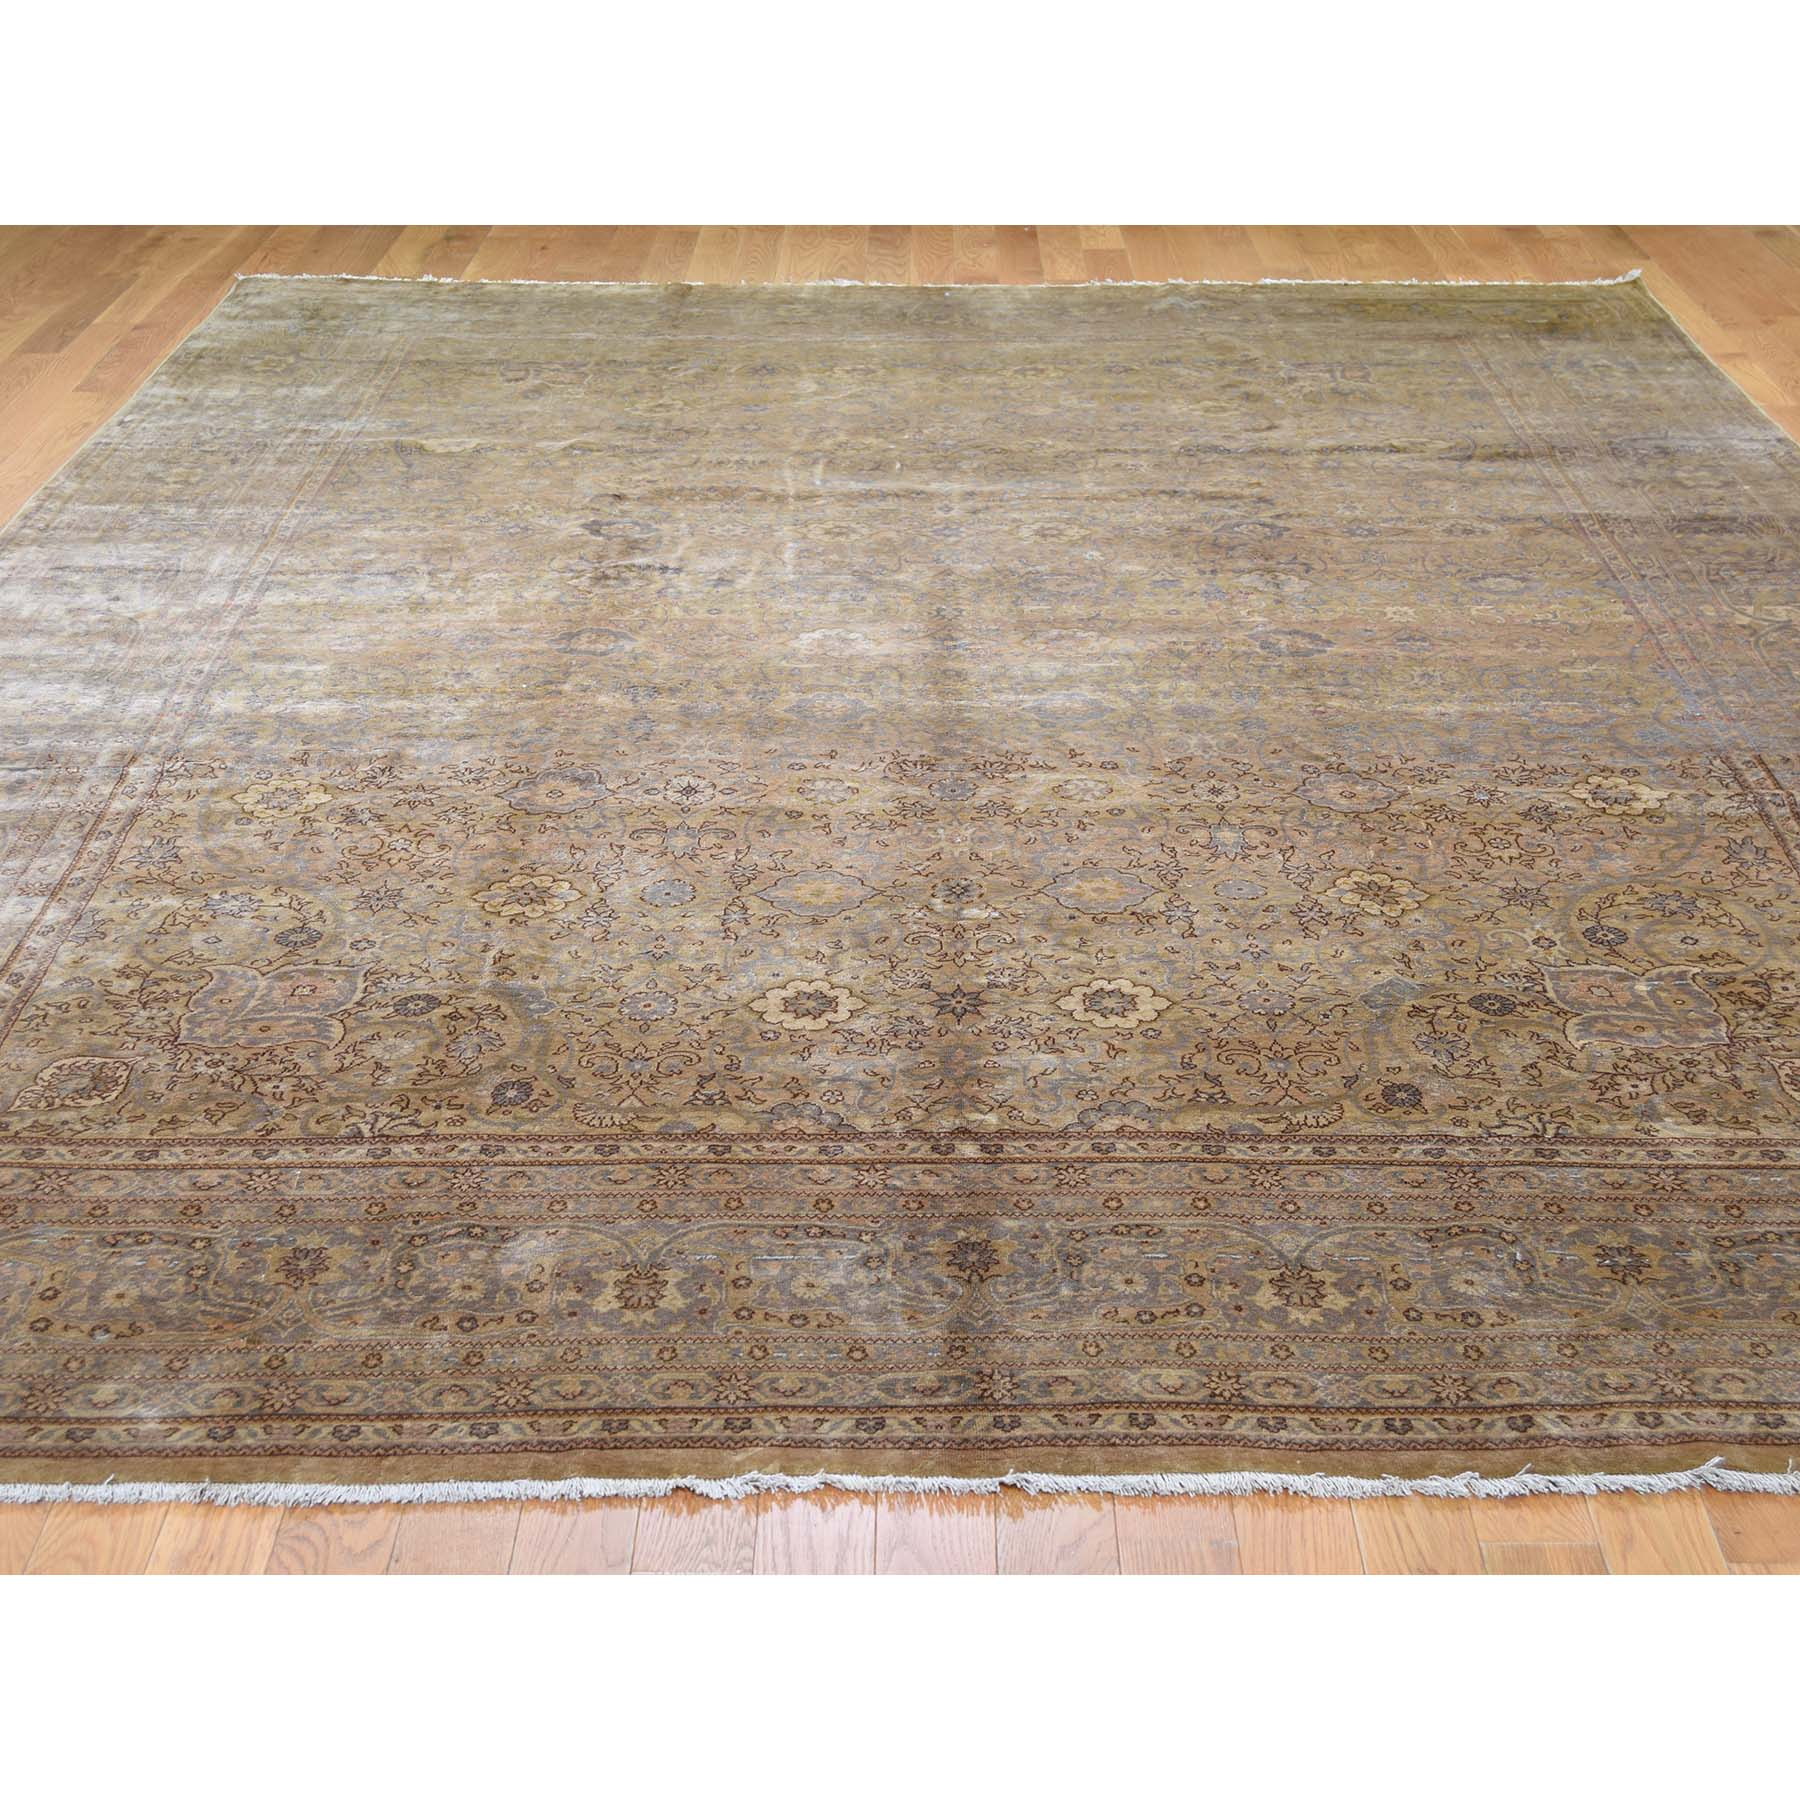 8-7 x11-8  Old Turkish Sivas Good Condition Hand-Knotted Oriental Rug